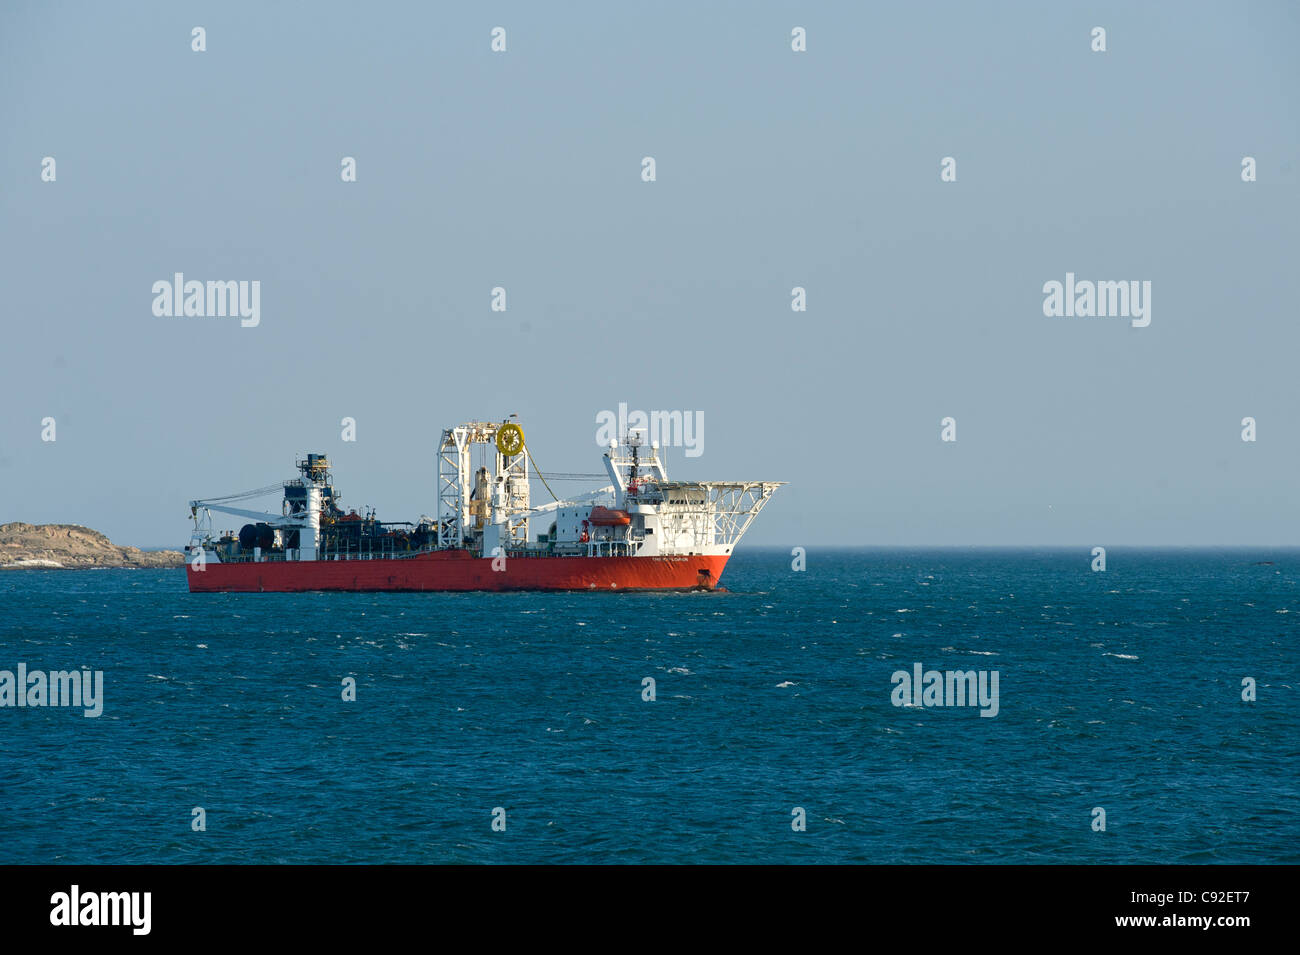 Off-shore diamond mining ship anchored in the bay of Luederitz in Namobia - Stock Image